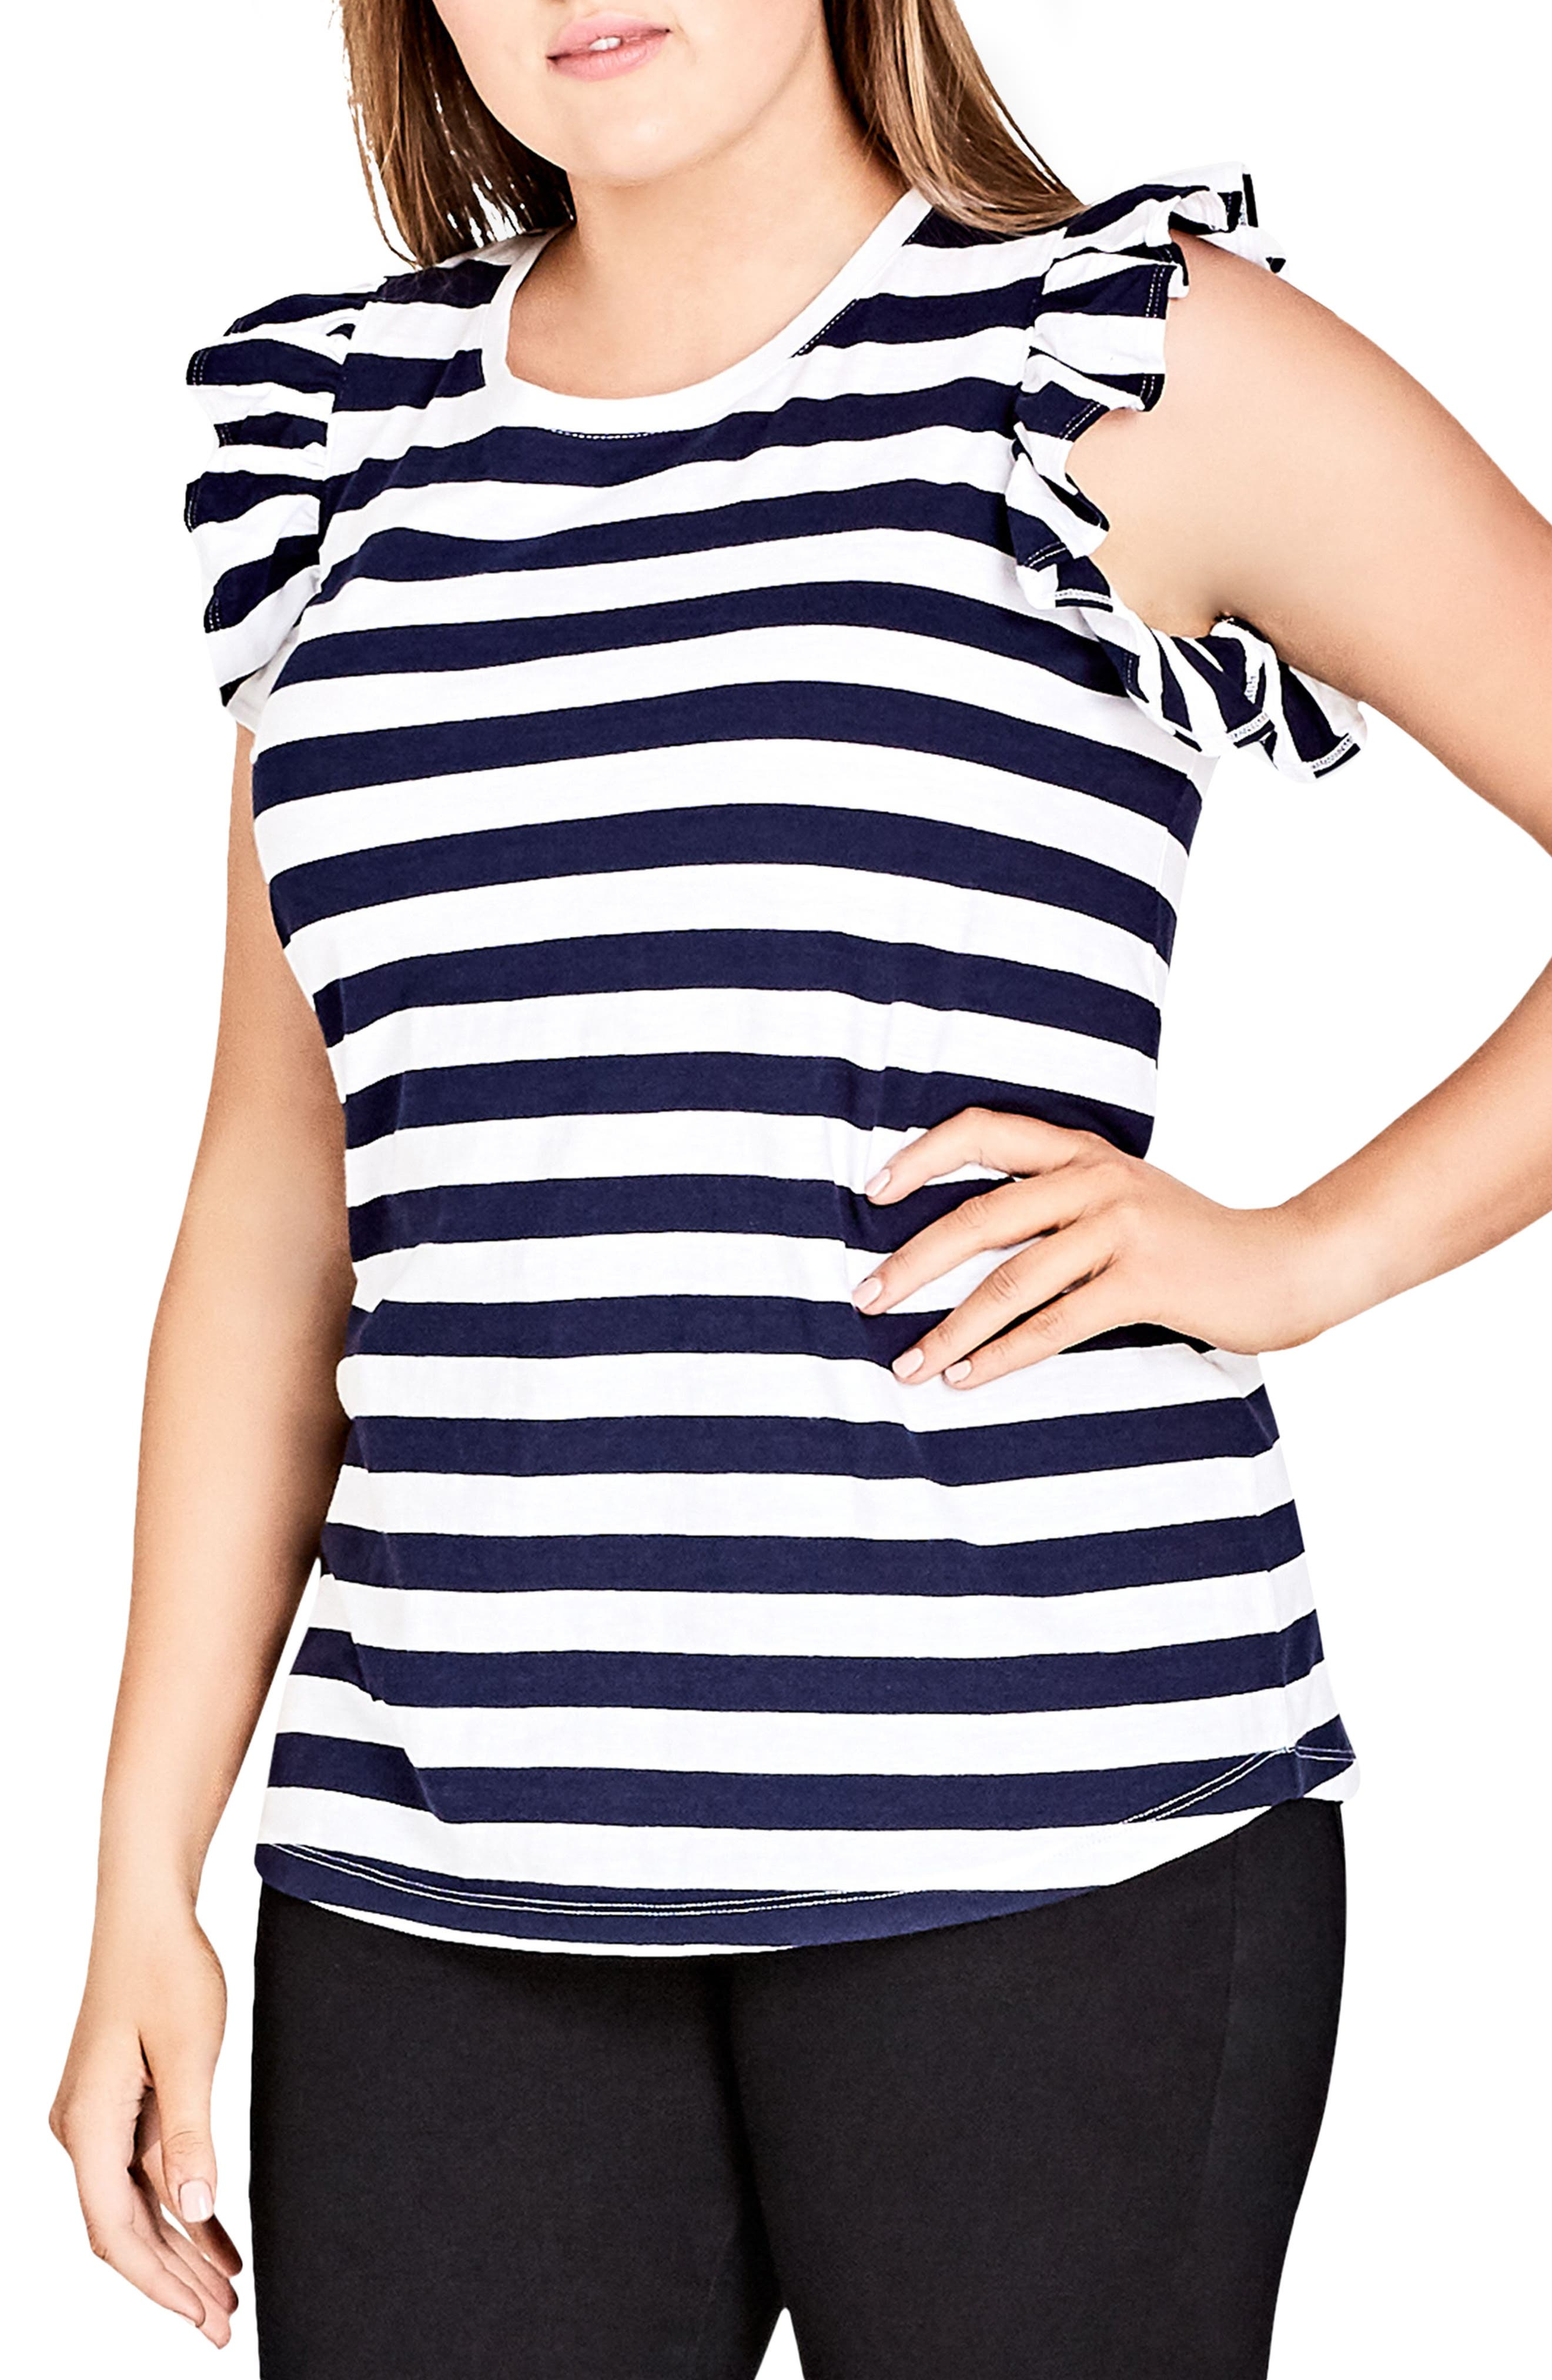 CITY CHIC Stripe Frill Sleeve Knit Top, Main, color, 108